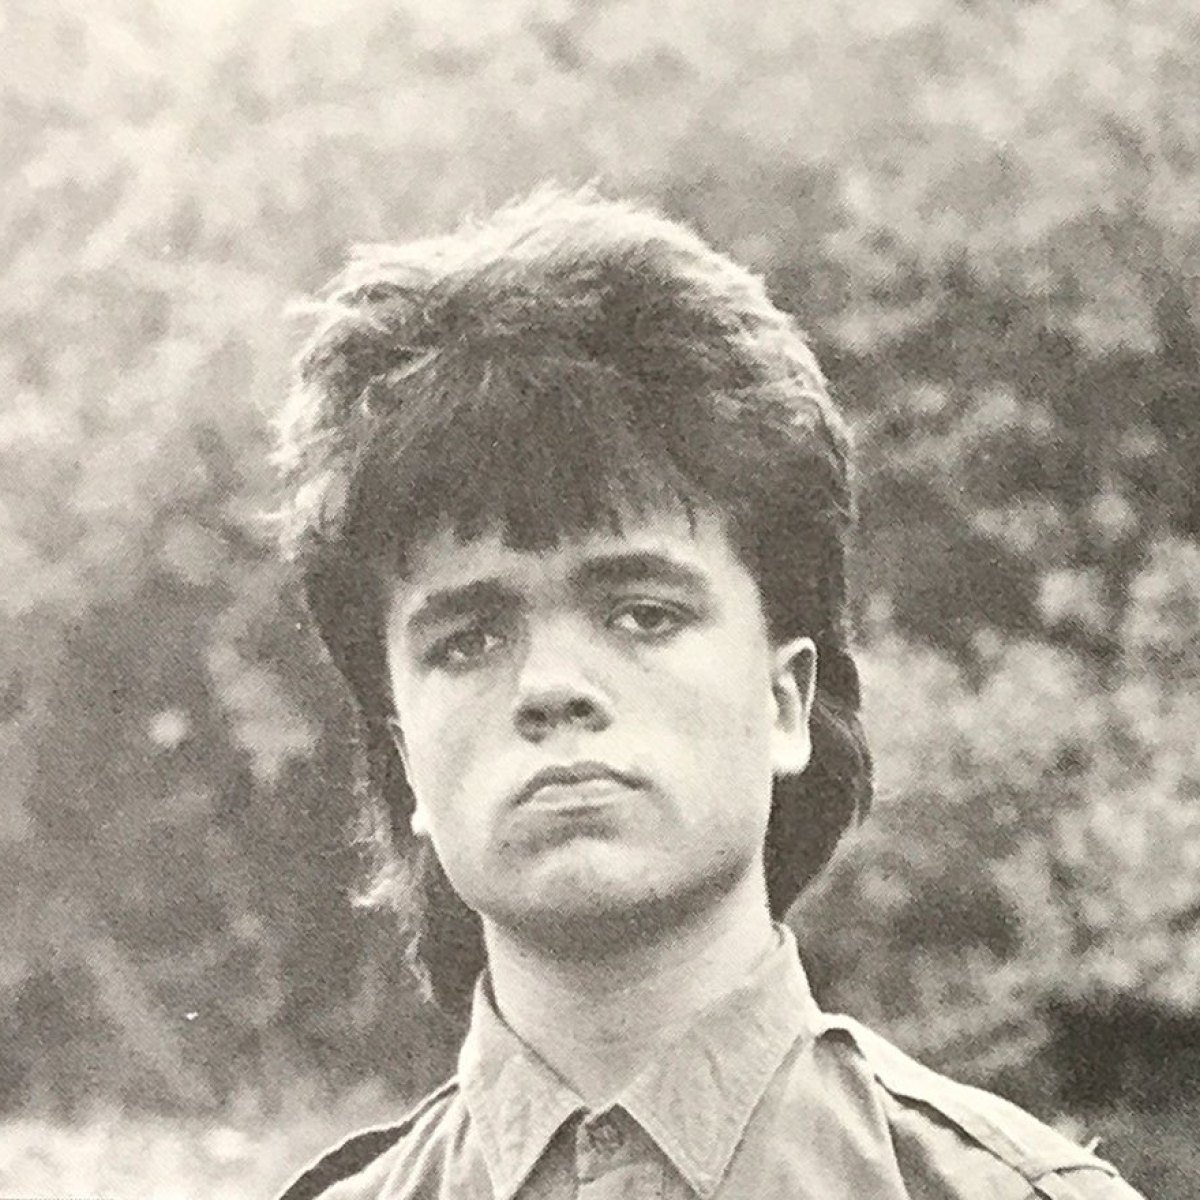 game of thrones peter dinklage mullet high school yearbook photos 04 10 Things You Didn't Know About Peter Dinklage